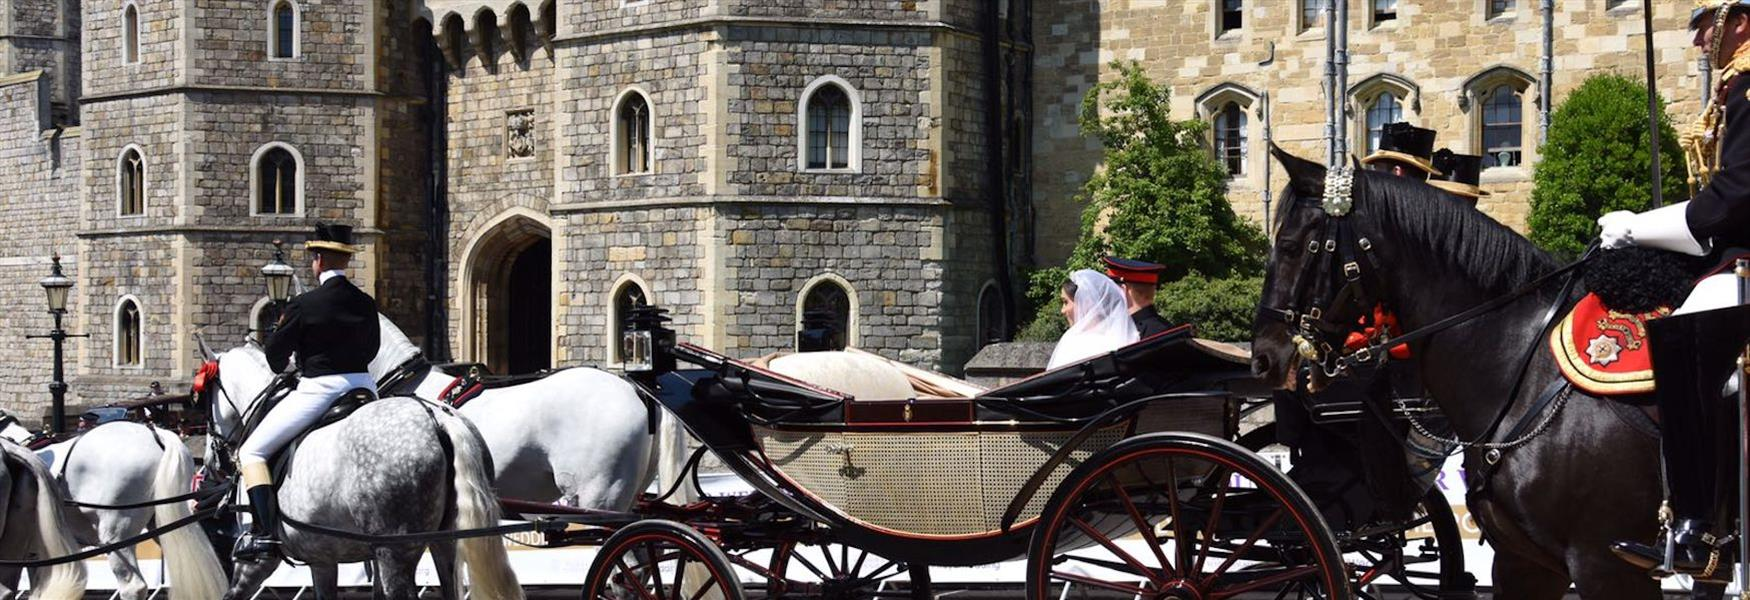 The Duke and Duchess of Sussex's carriage procession